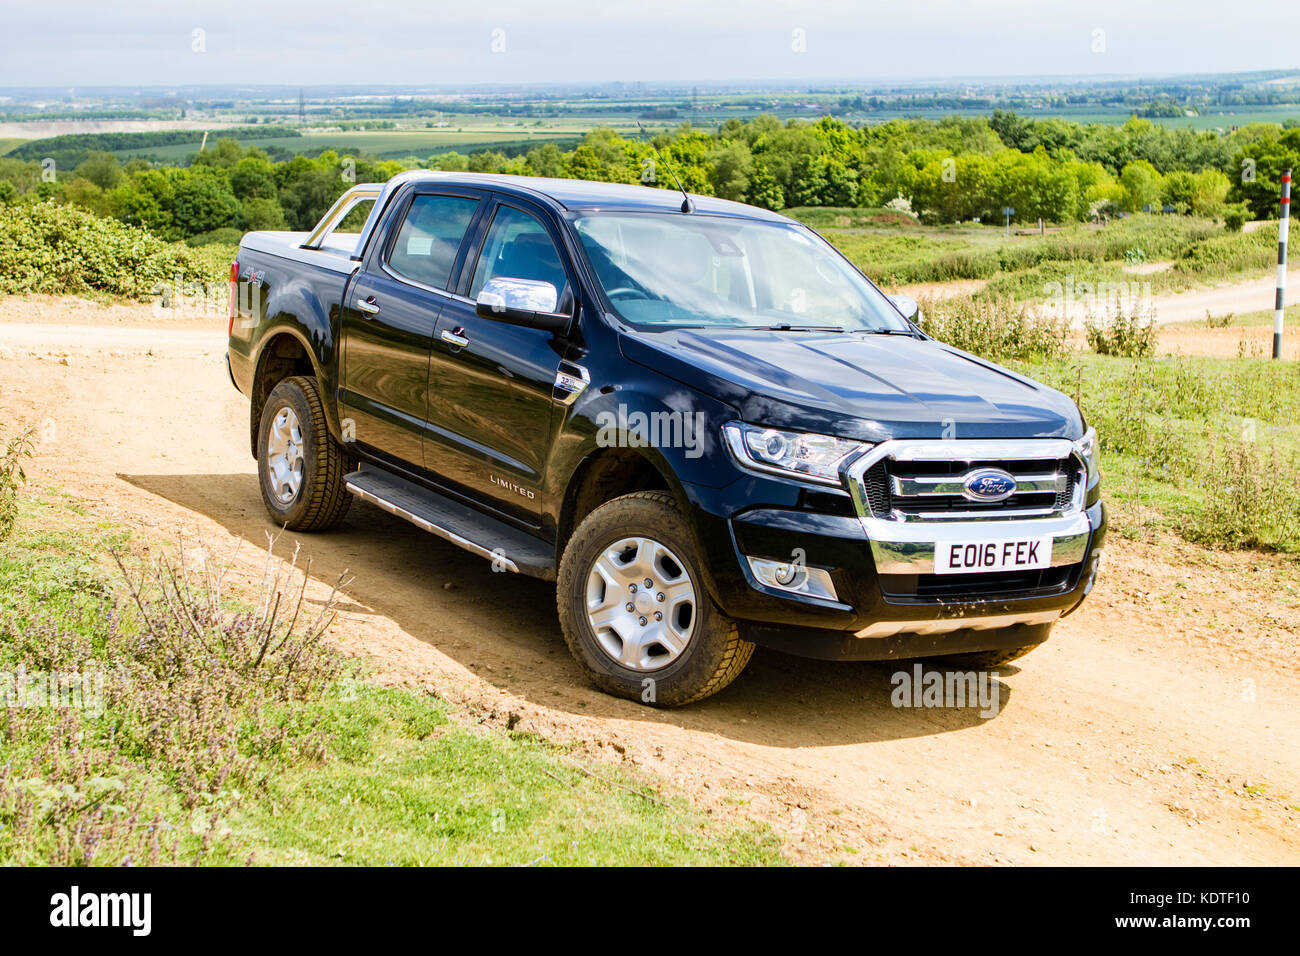 UK Spec Ford Ranger - Stock Image